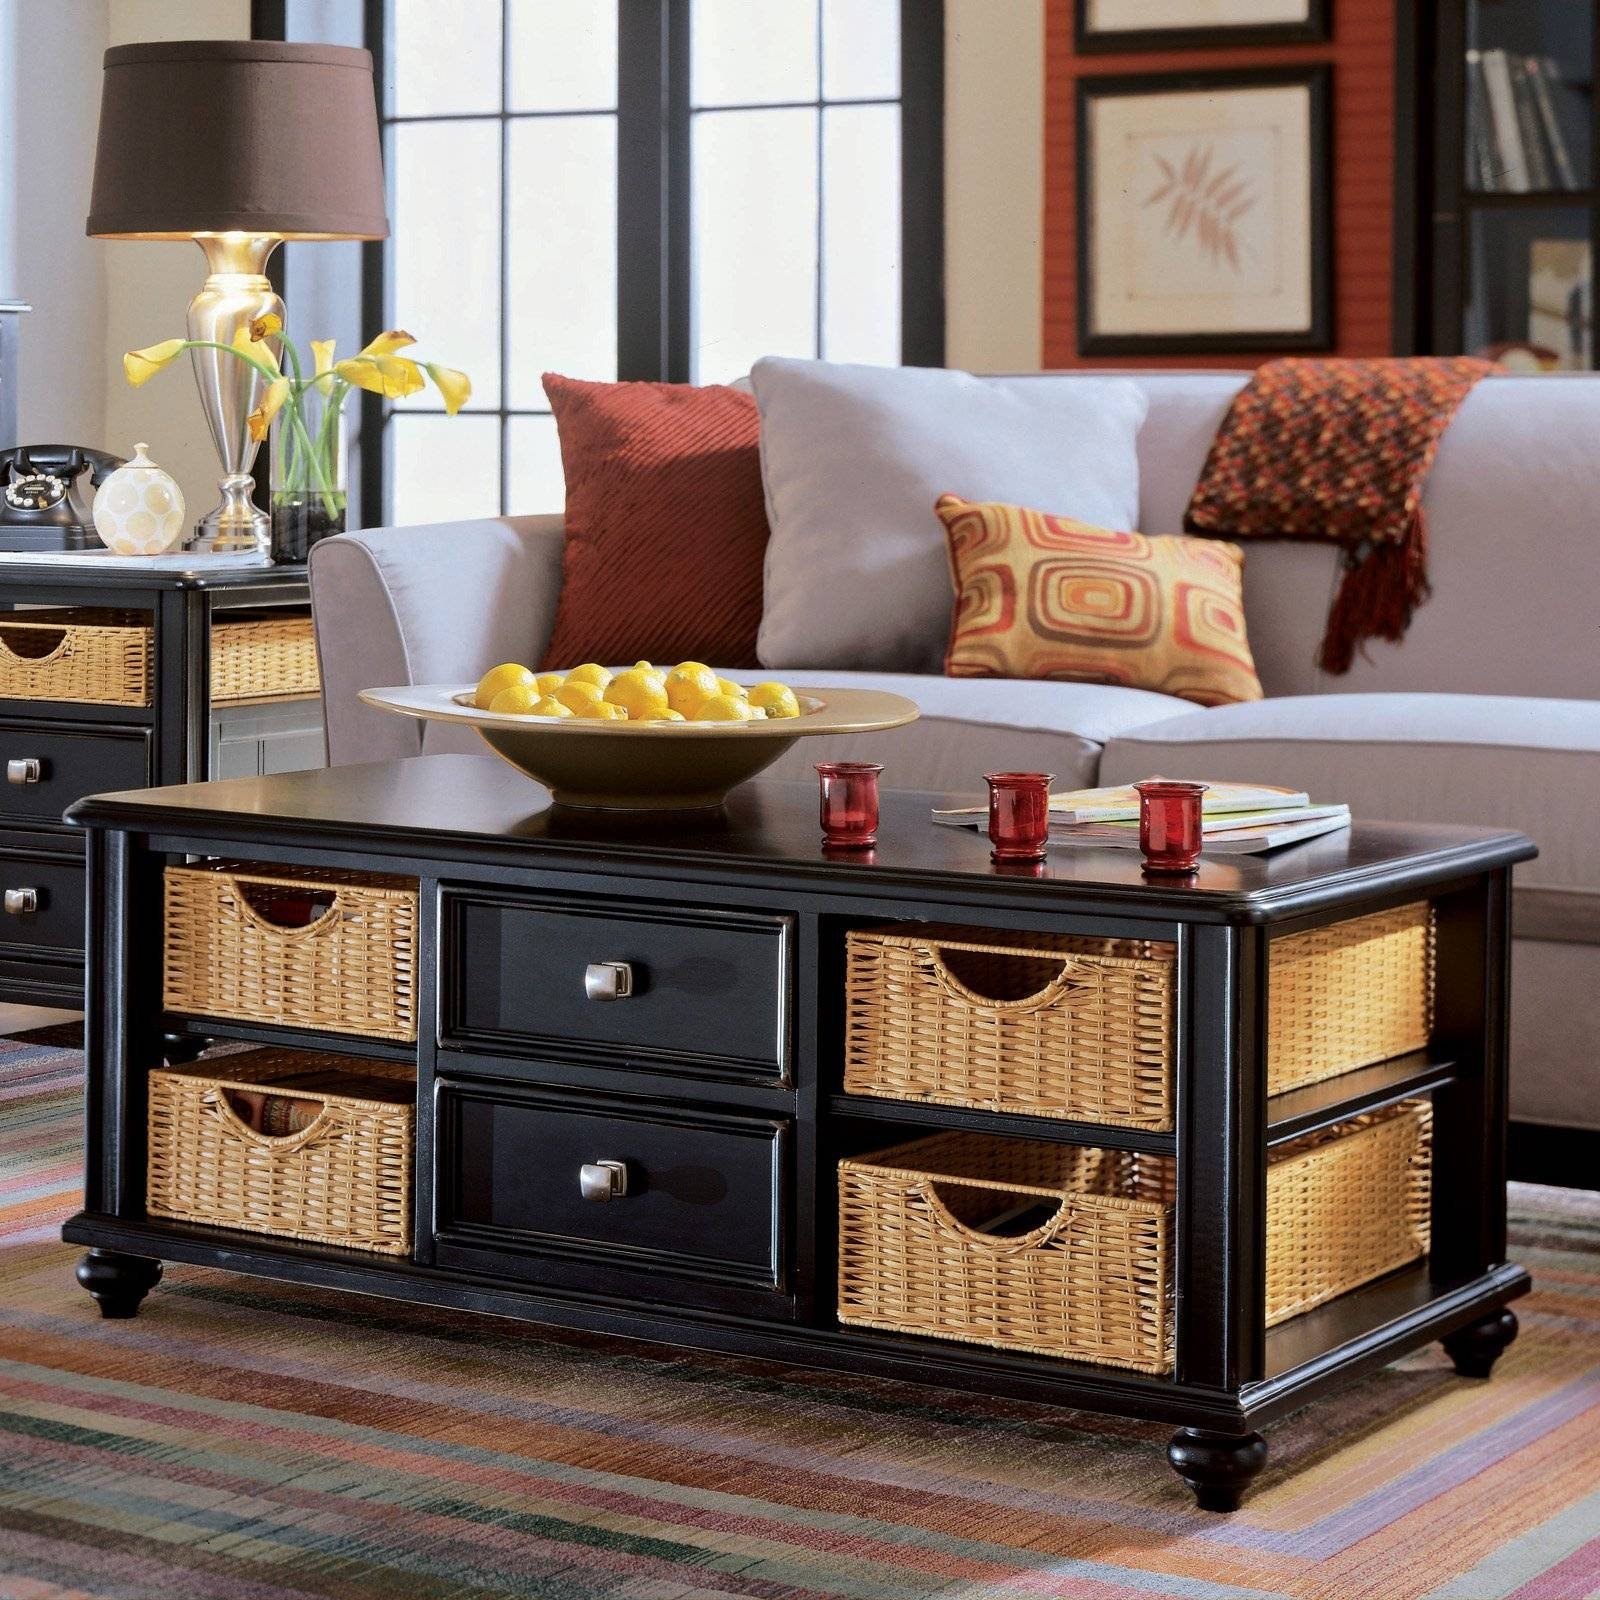 American Drew Camden Light Rectangular Coffee Table | Coffee for White Coffee Tables With Baskets (Image 1 of 30)